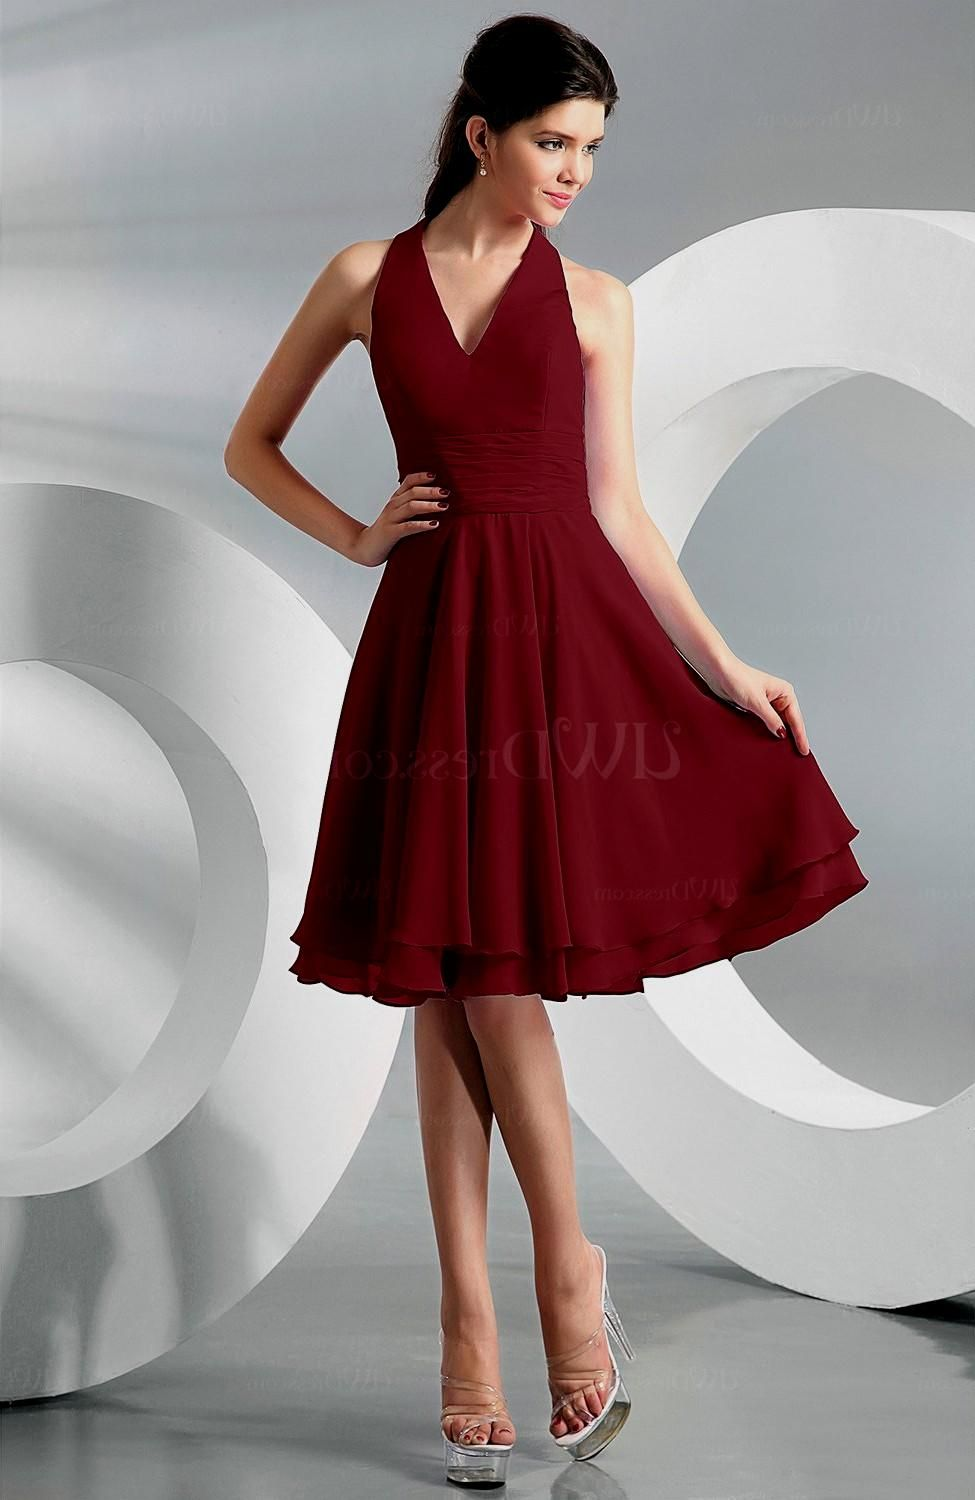 Dark red bridesmaid dresses with straps naf dresses fall wedding dark red bridesmaid dresses with straps naf dresses ombrellifo Gallery